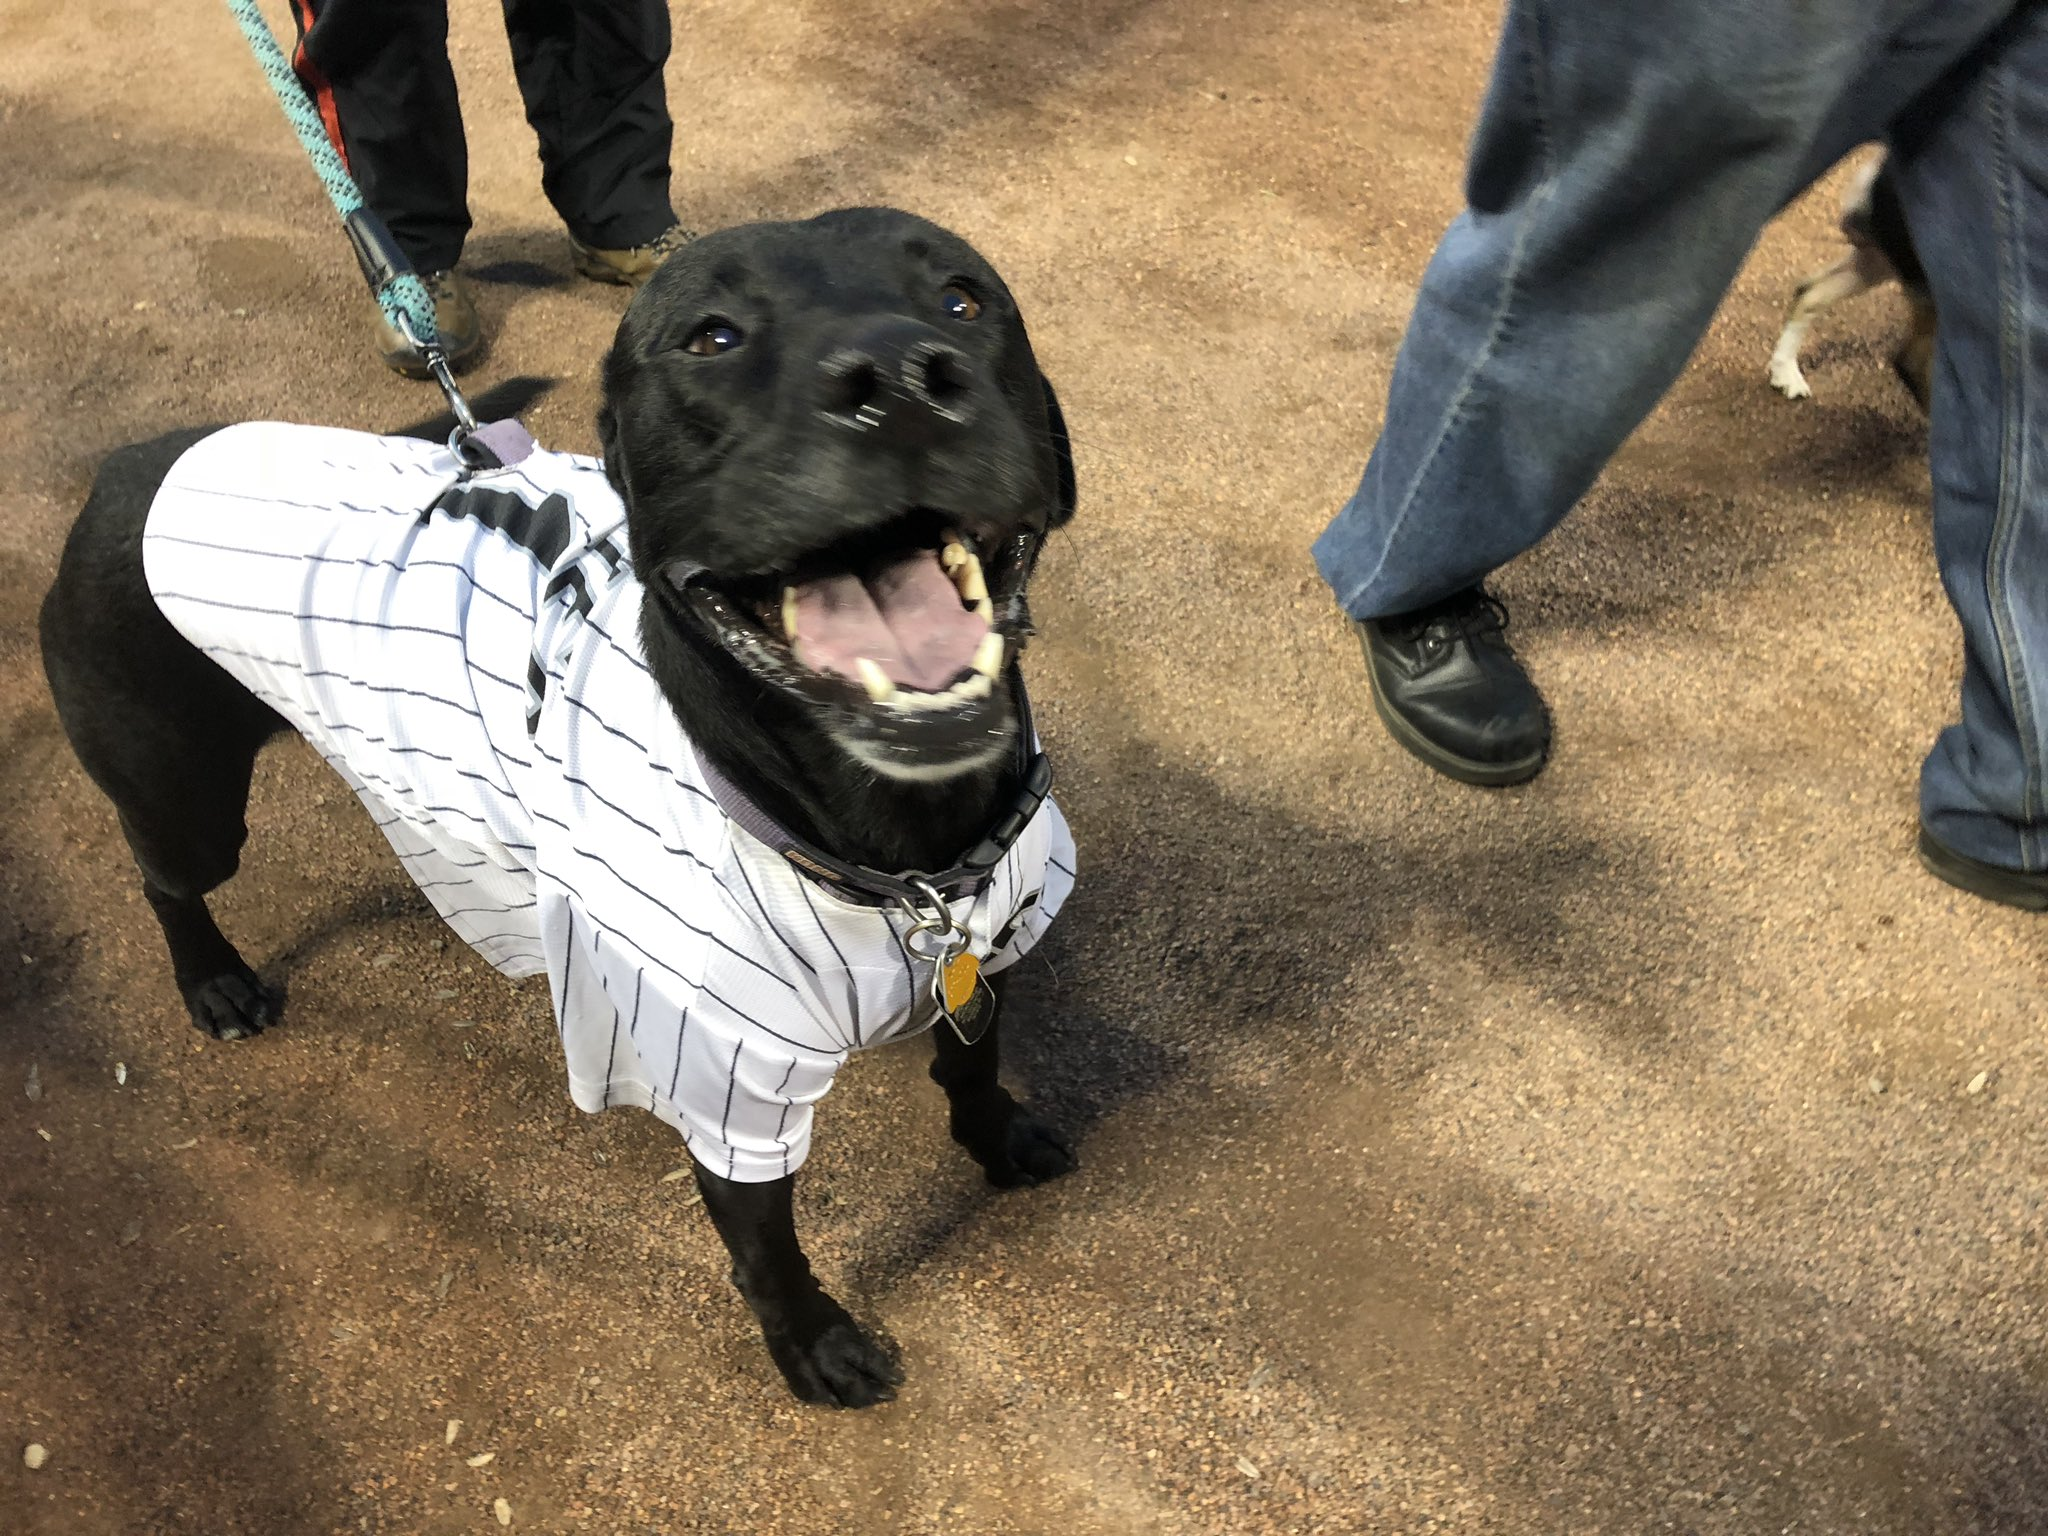 How we all feel on Dog Day. #WhiteSox https://t.co/VMvZ20HHJK